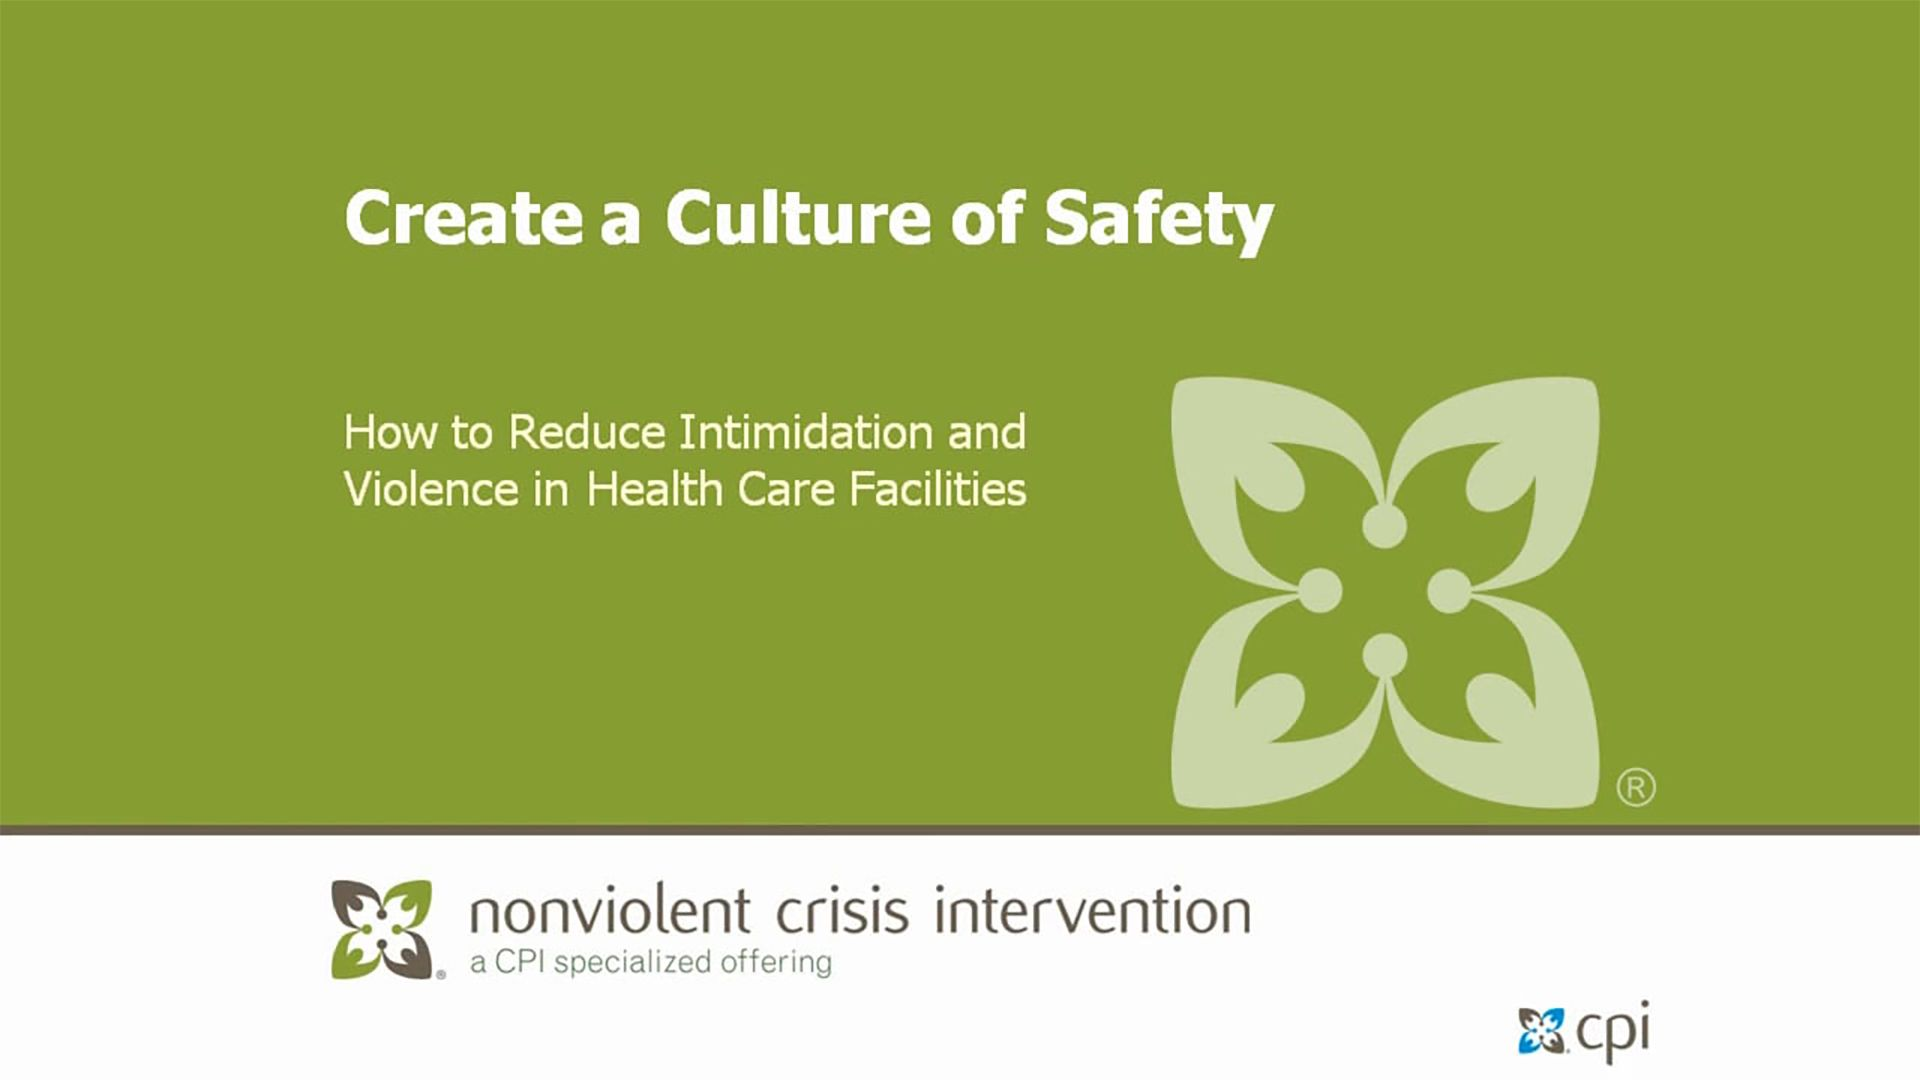 Create a Culture of Safety: How to Reduce Intimidation and Violence in Health Care Facilities